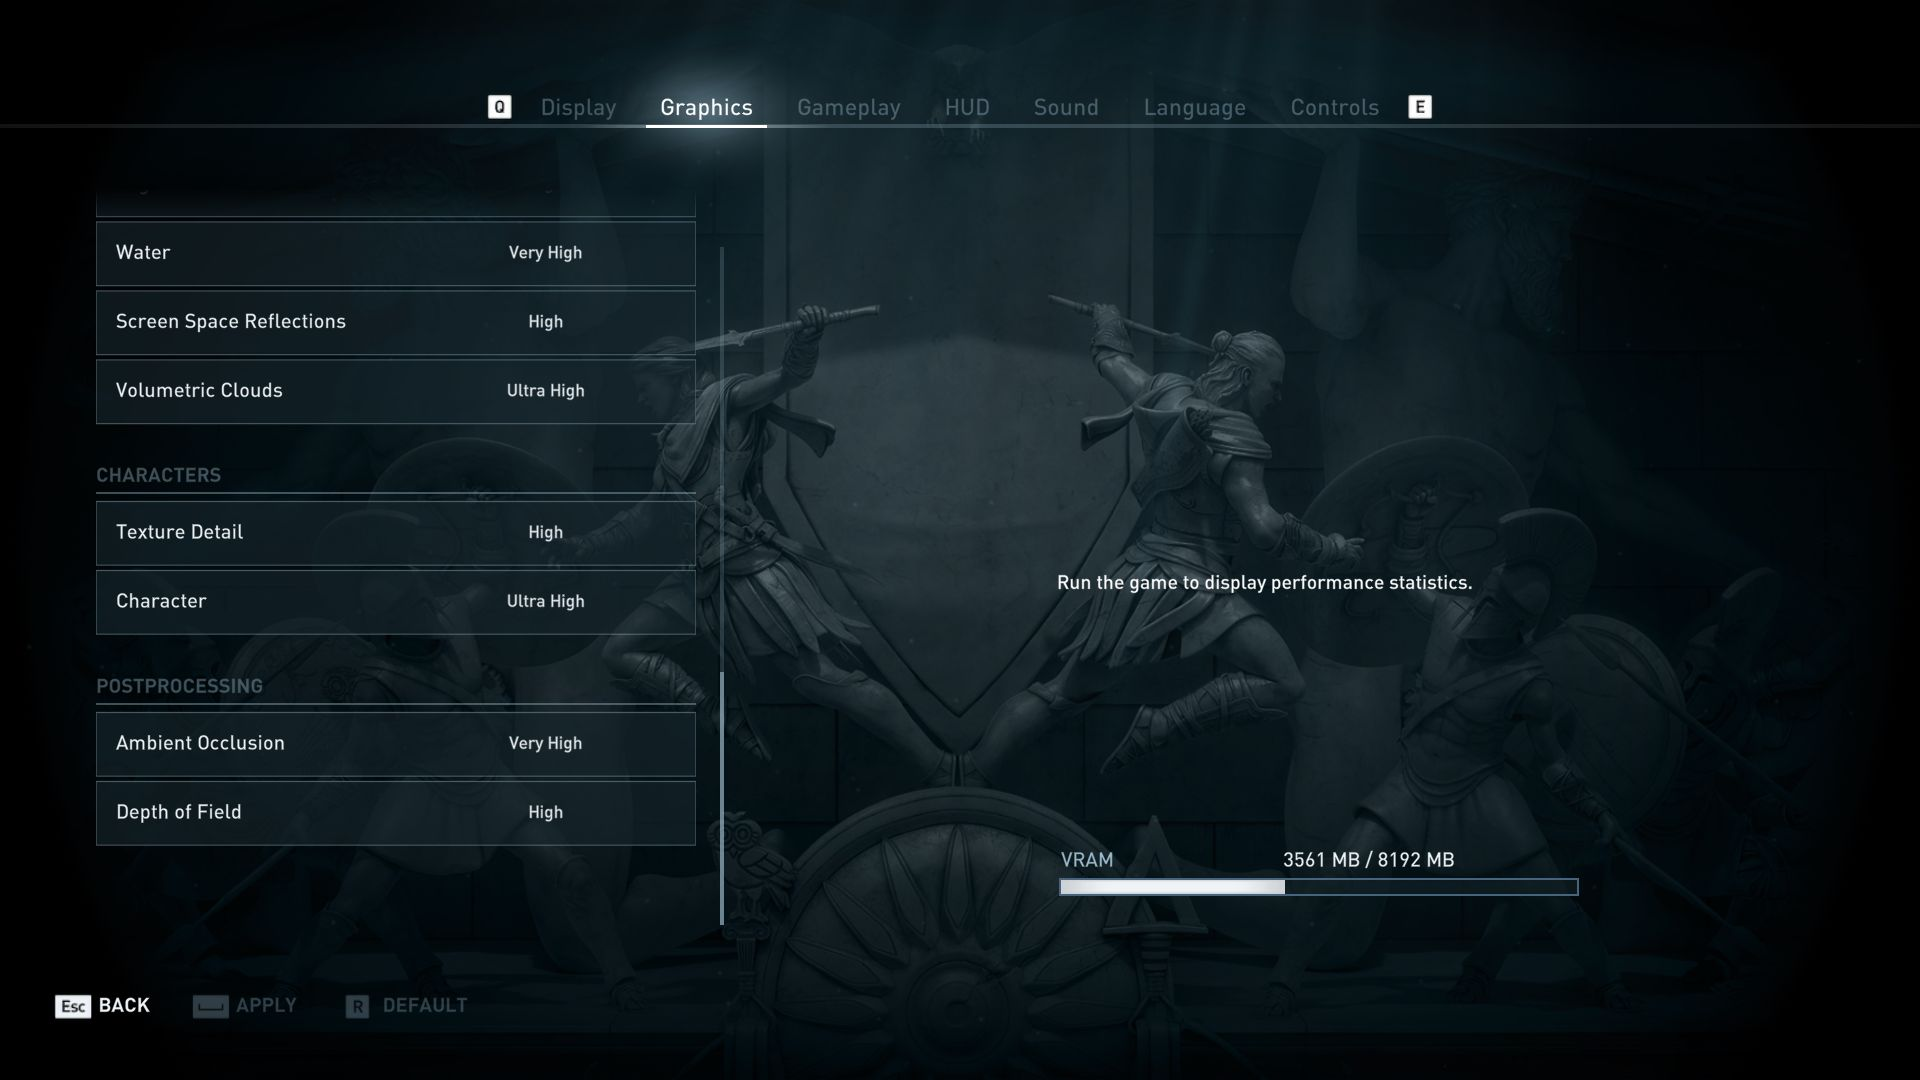 Assassin's Creed Odyssey Notebook and Desktop Benchmarks